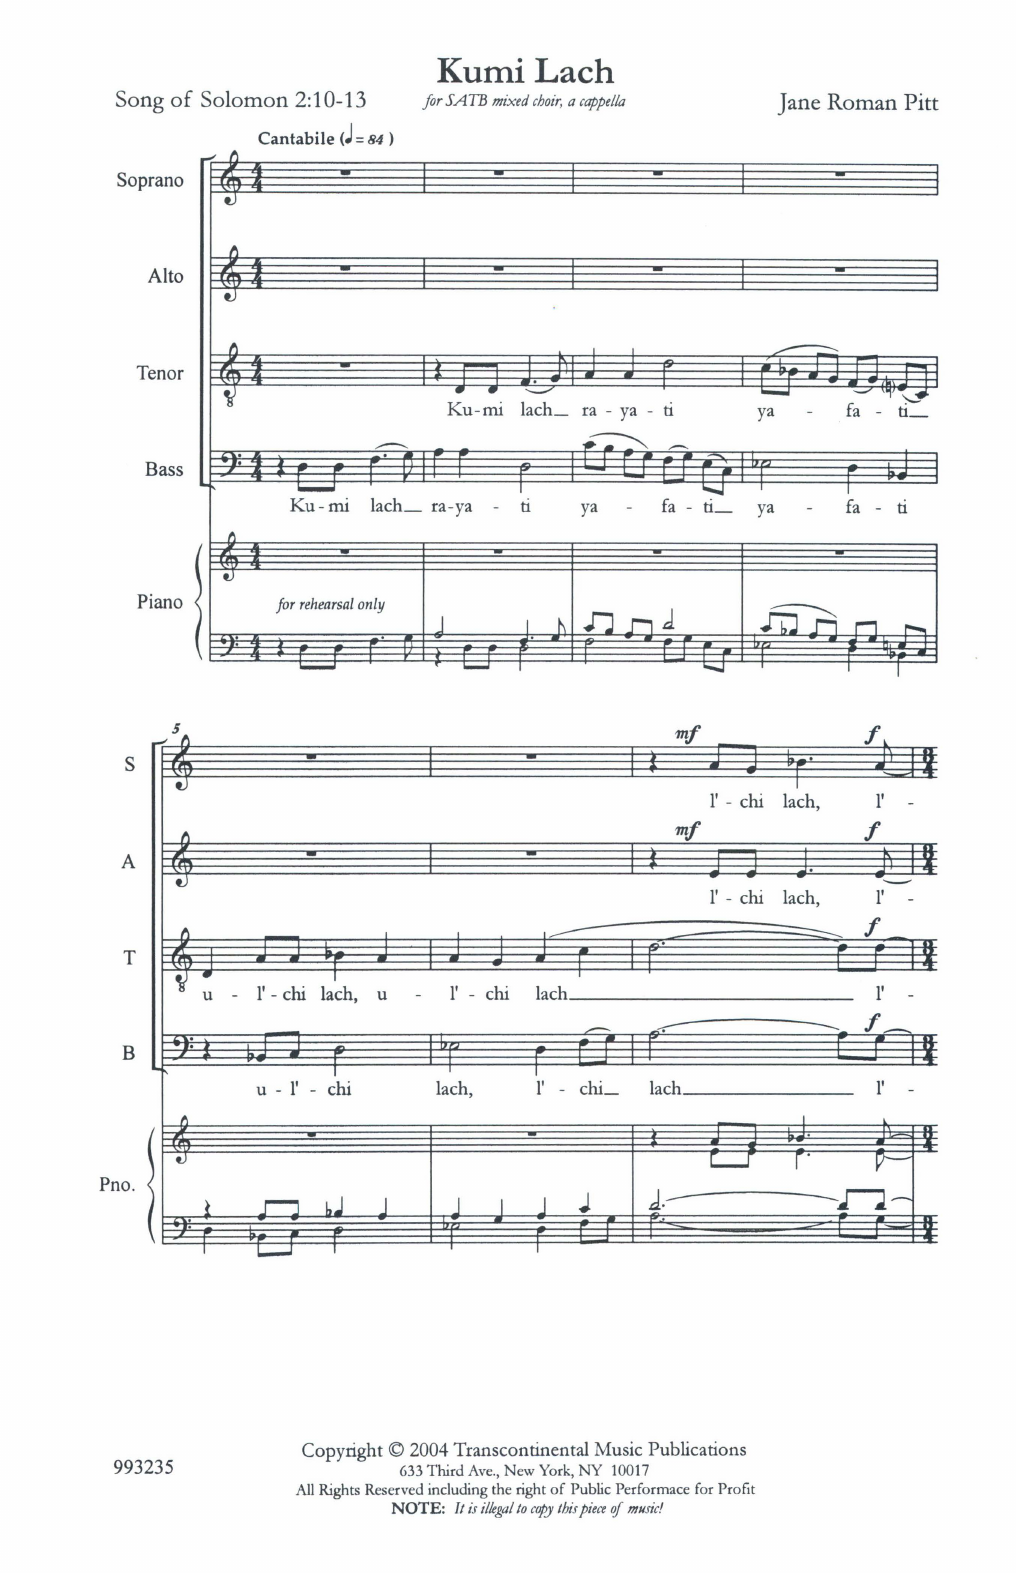 Kumi Lach Sheet Music